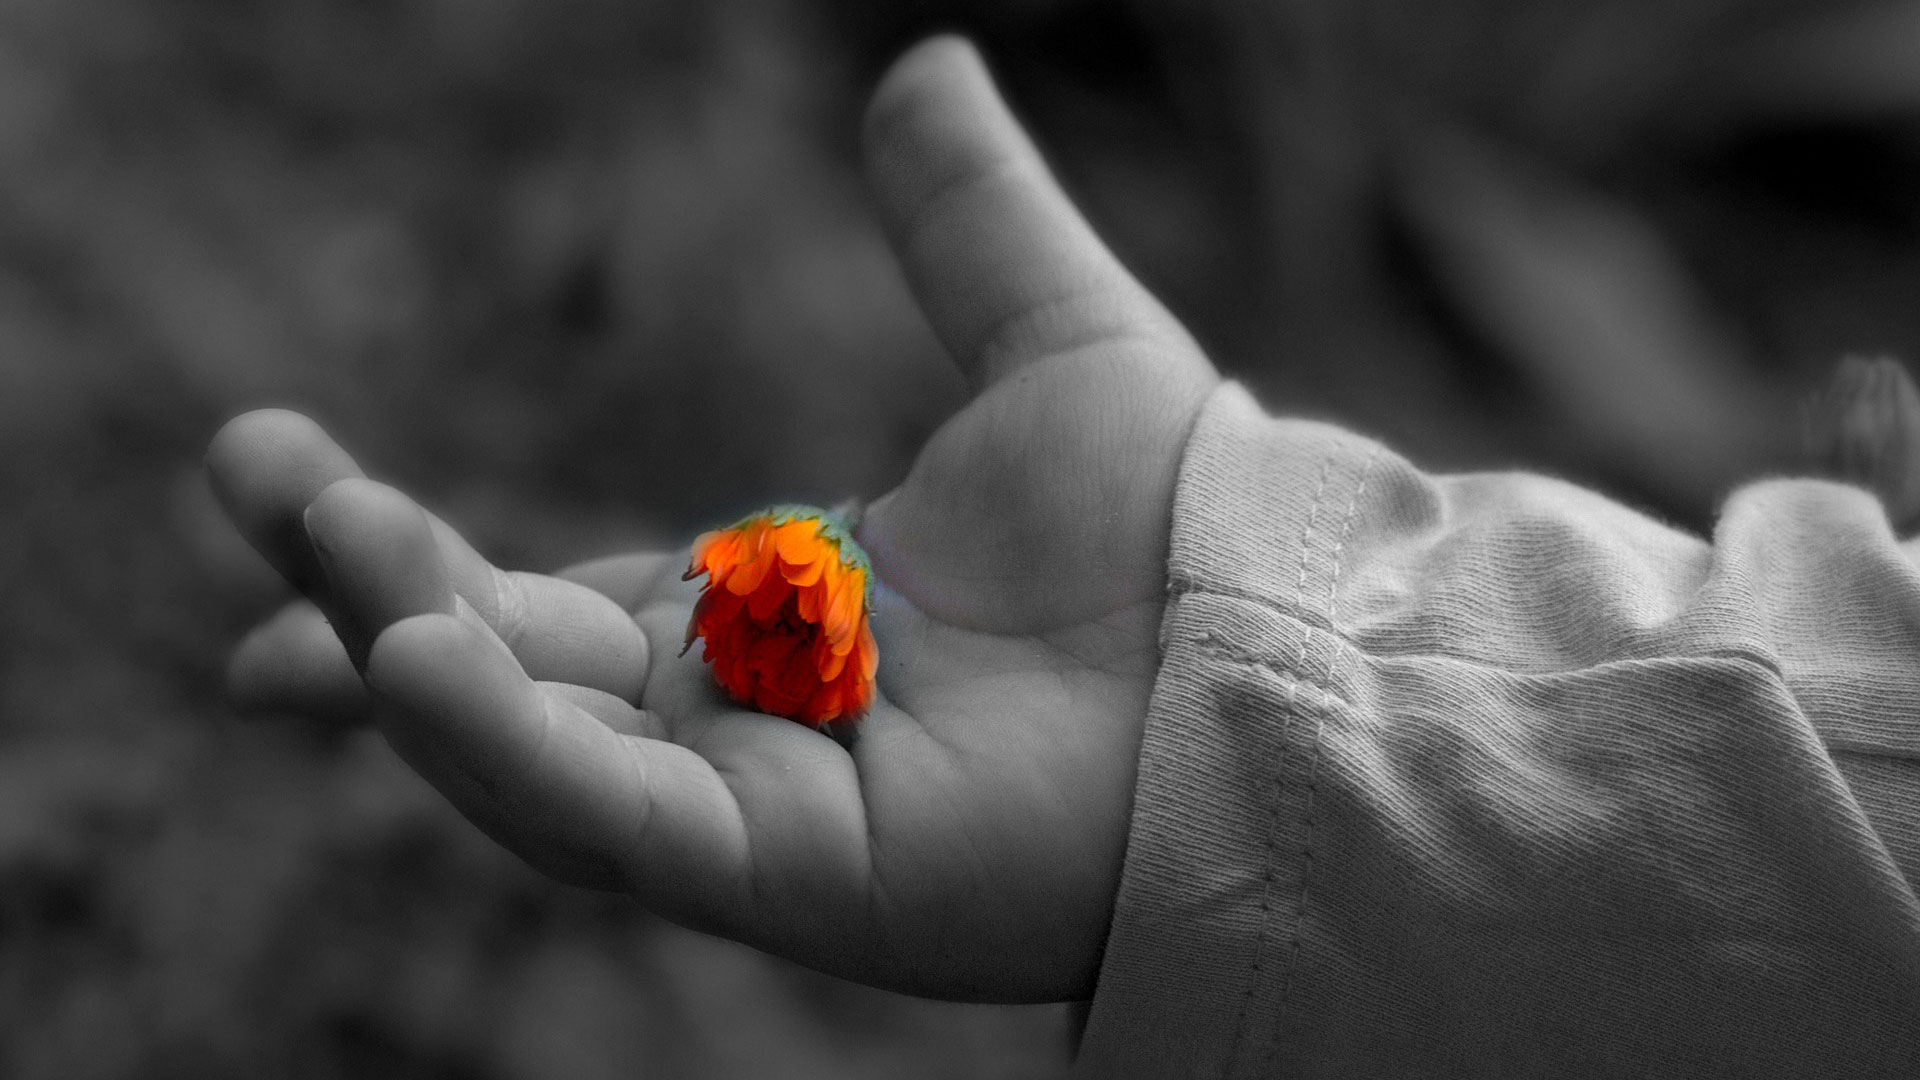 Black and white hand holding a colored flower.